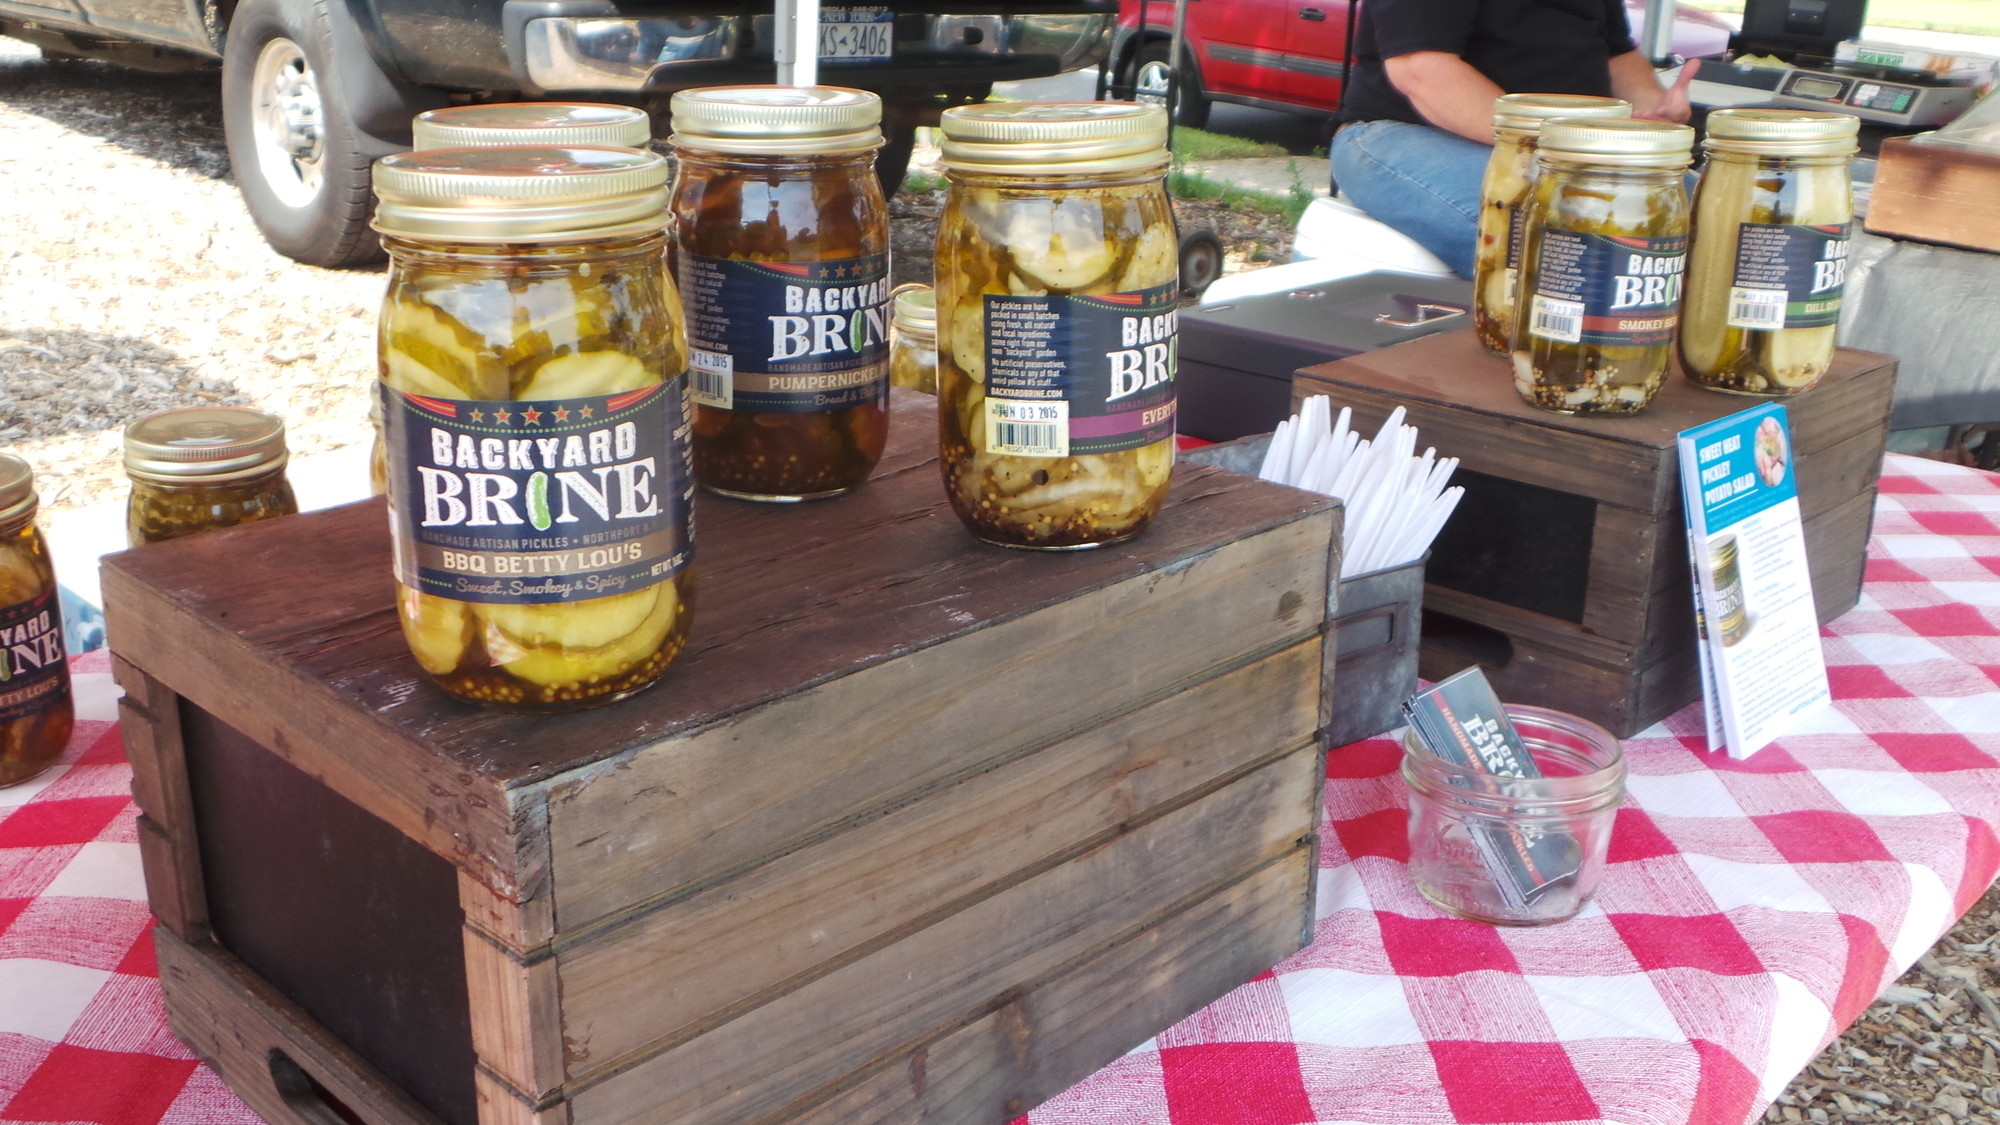 Backyard Brine uses Long Island produce to make pickles from their 16 original recipes